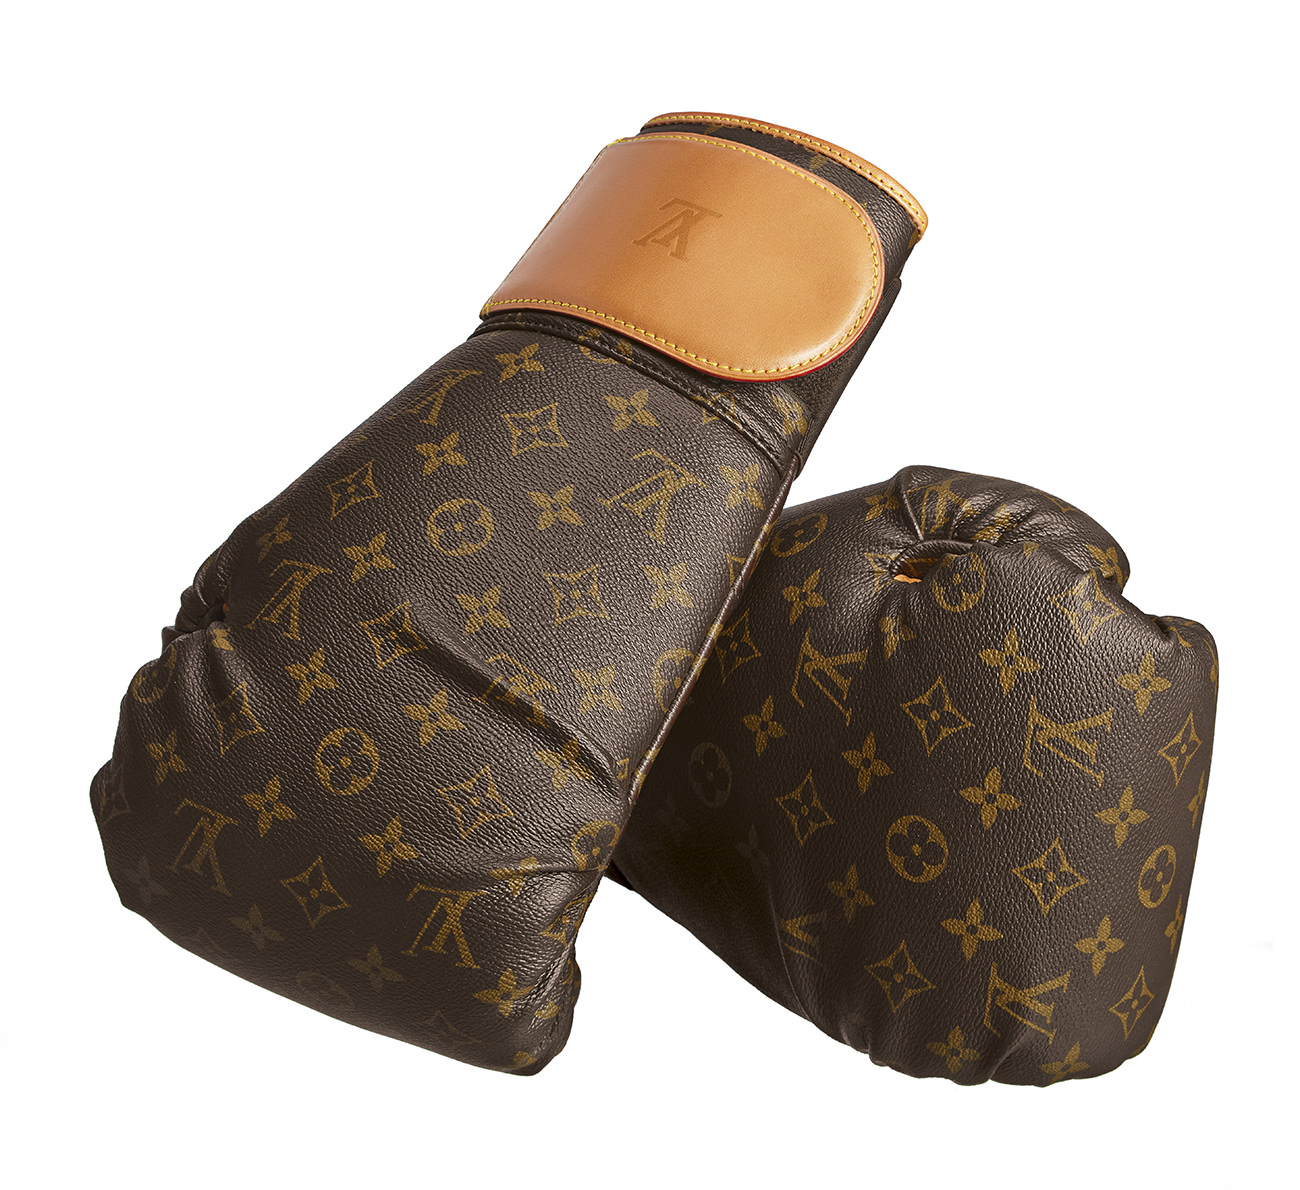 louis-vuitton-by-karl-lagerfeld-3